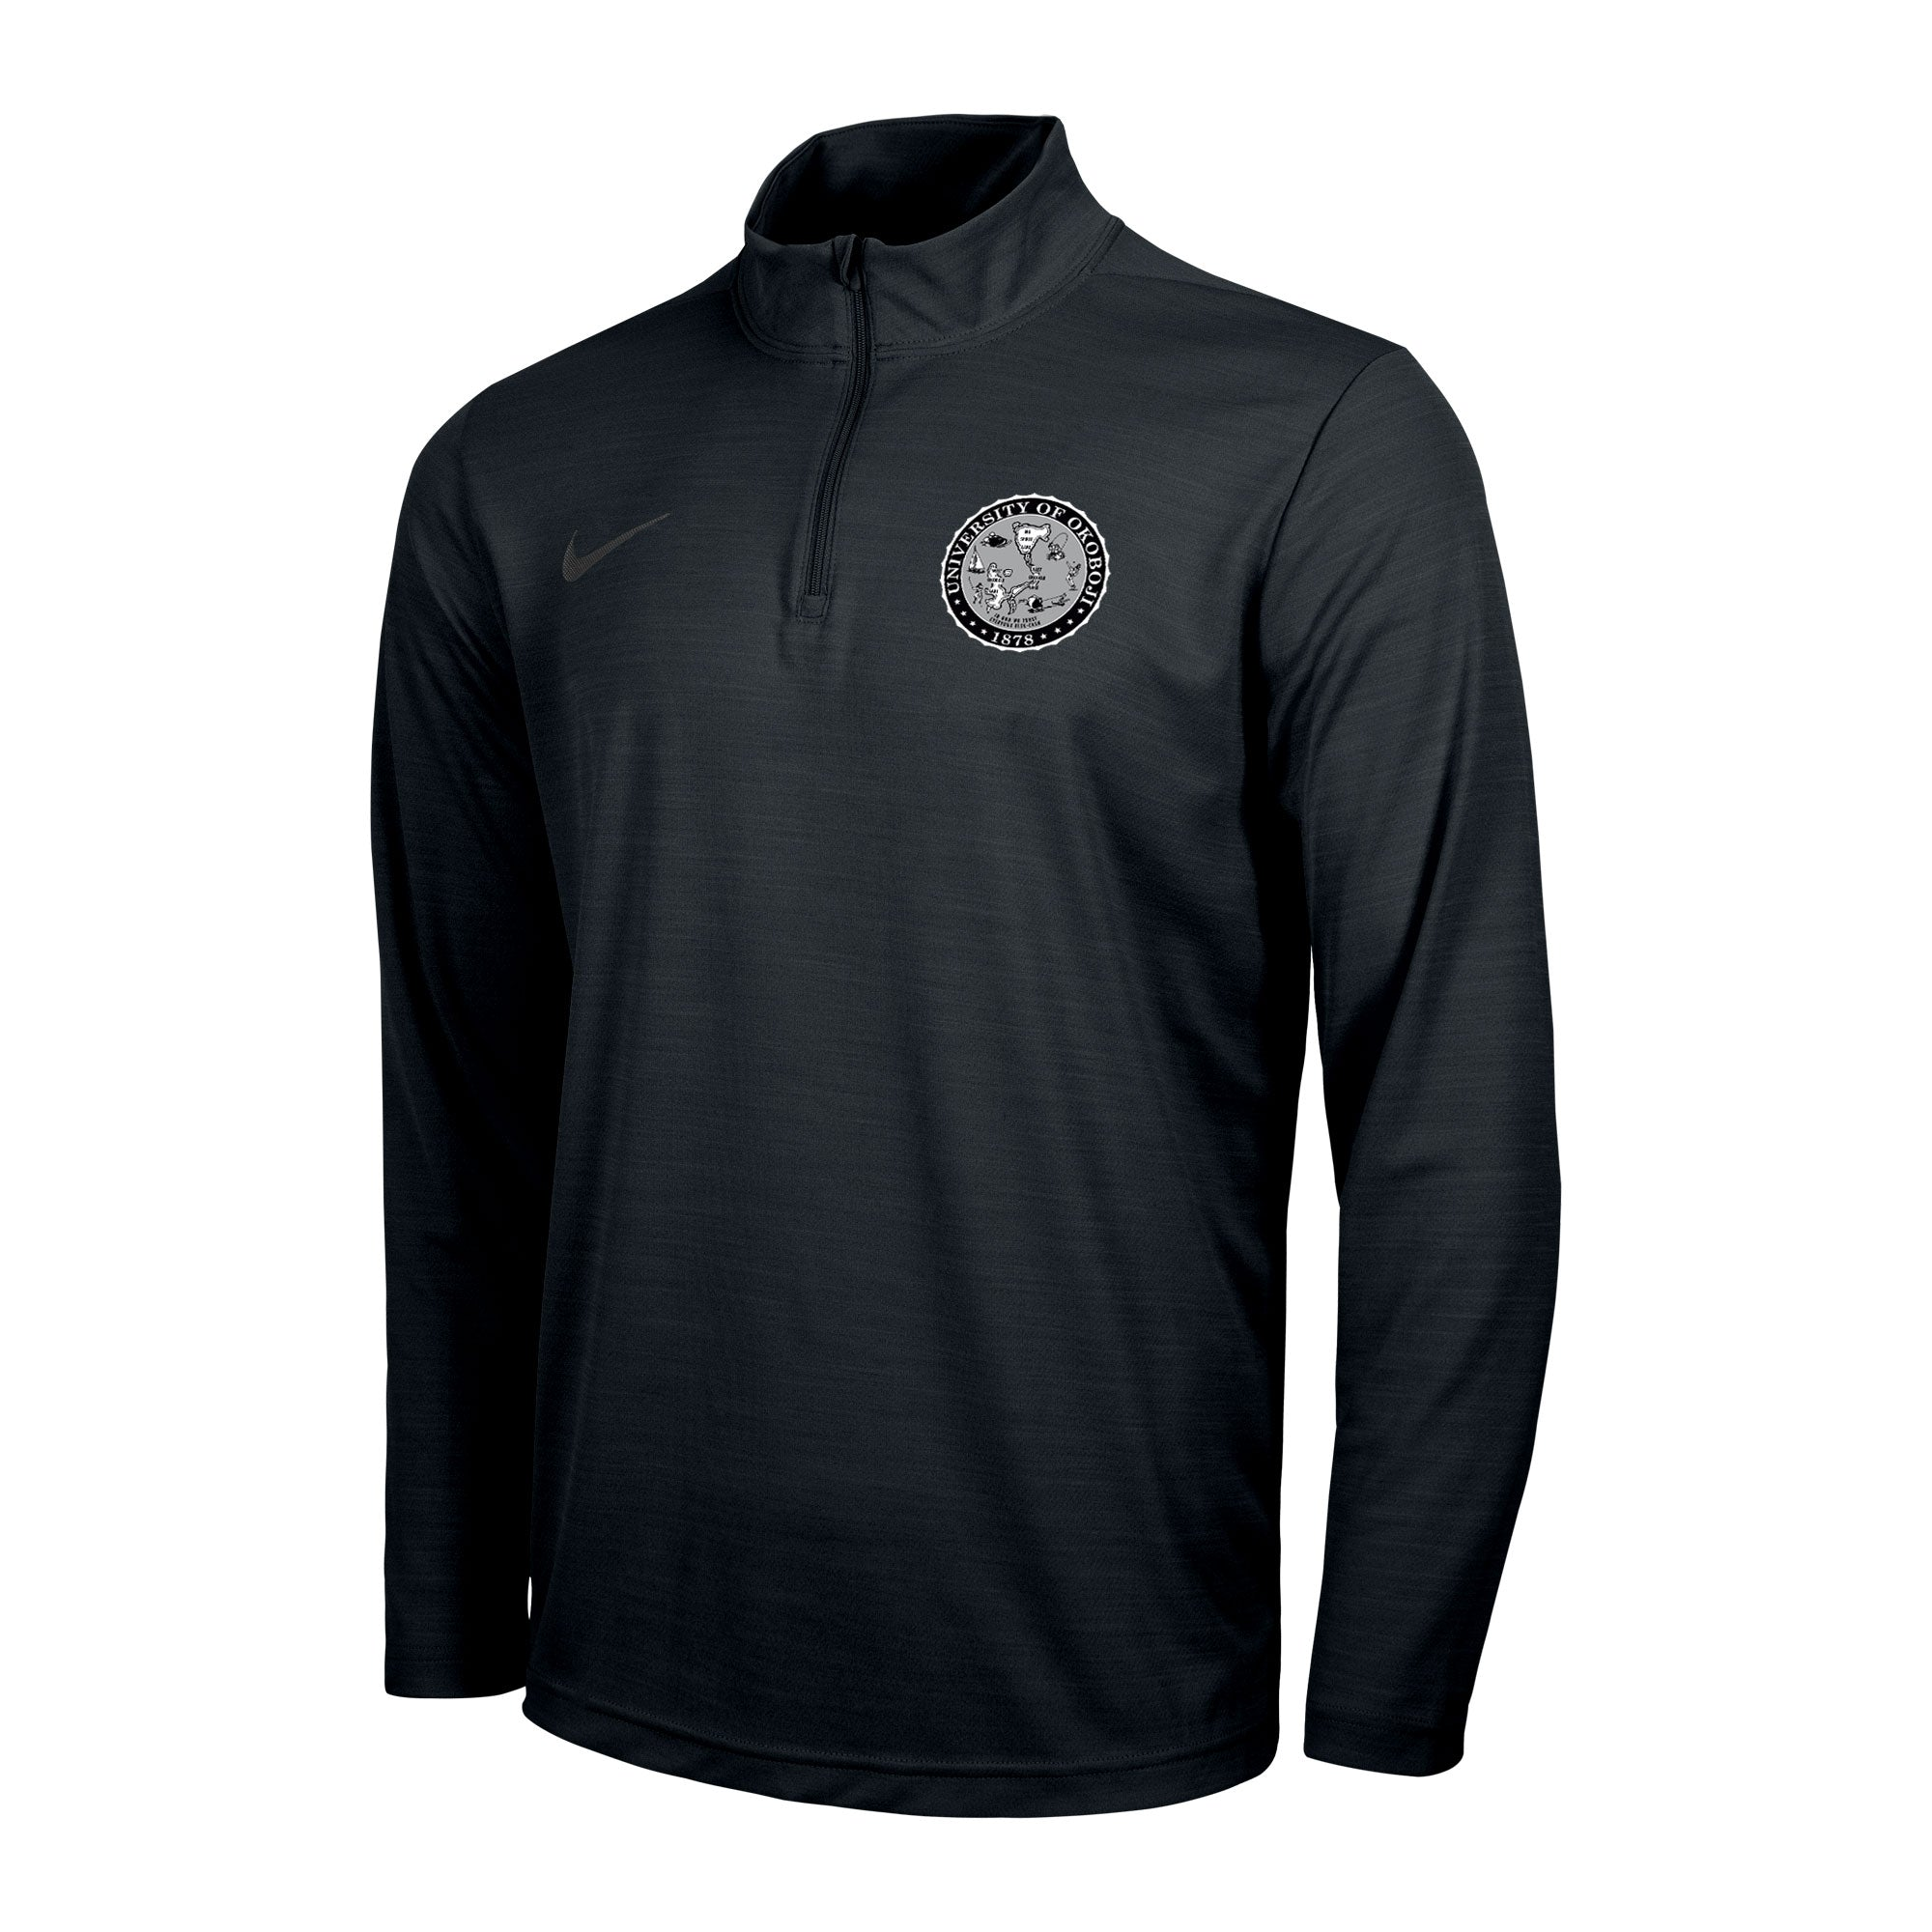 Men's Okoboji Intensity 1/4 Zip Top - Black